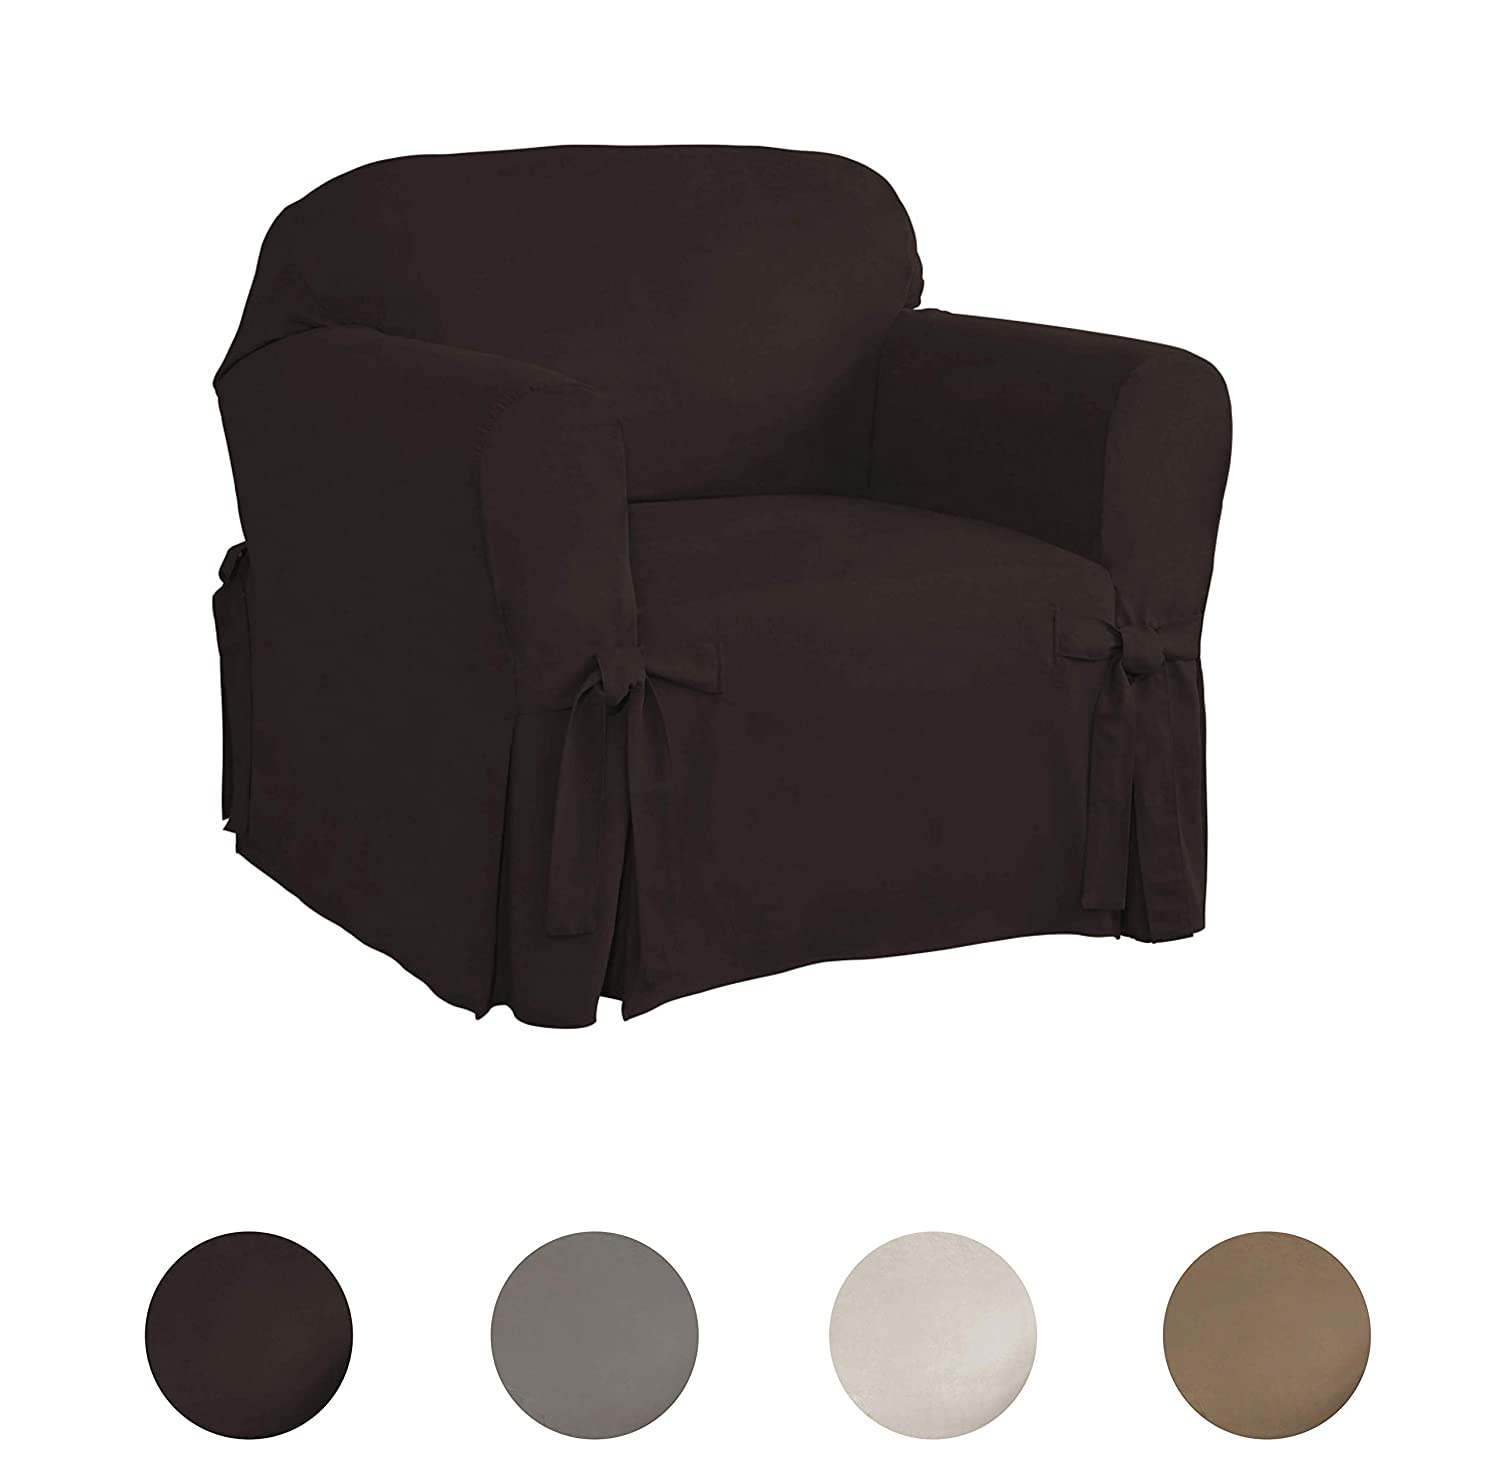 038533834052 Relaxed Fit Smooth Suede Furniture Slipcover for Chair Chocolate Serta